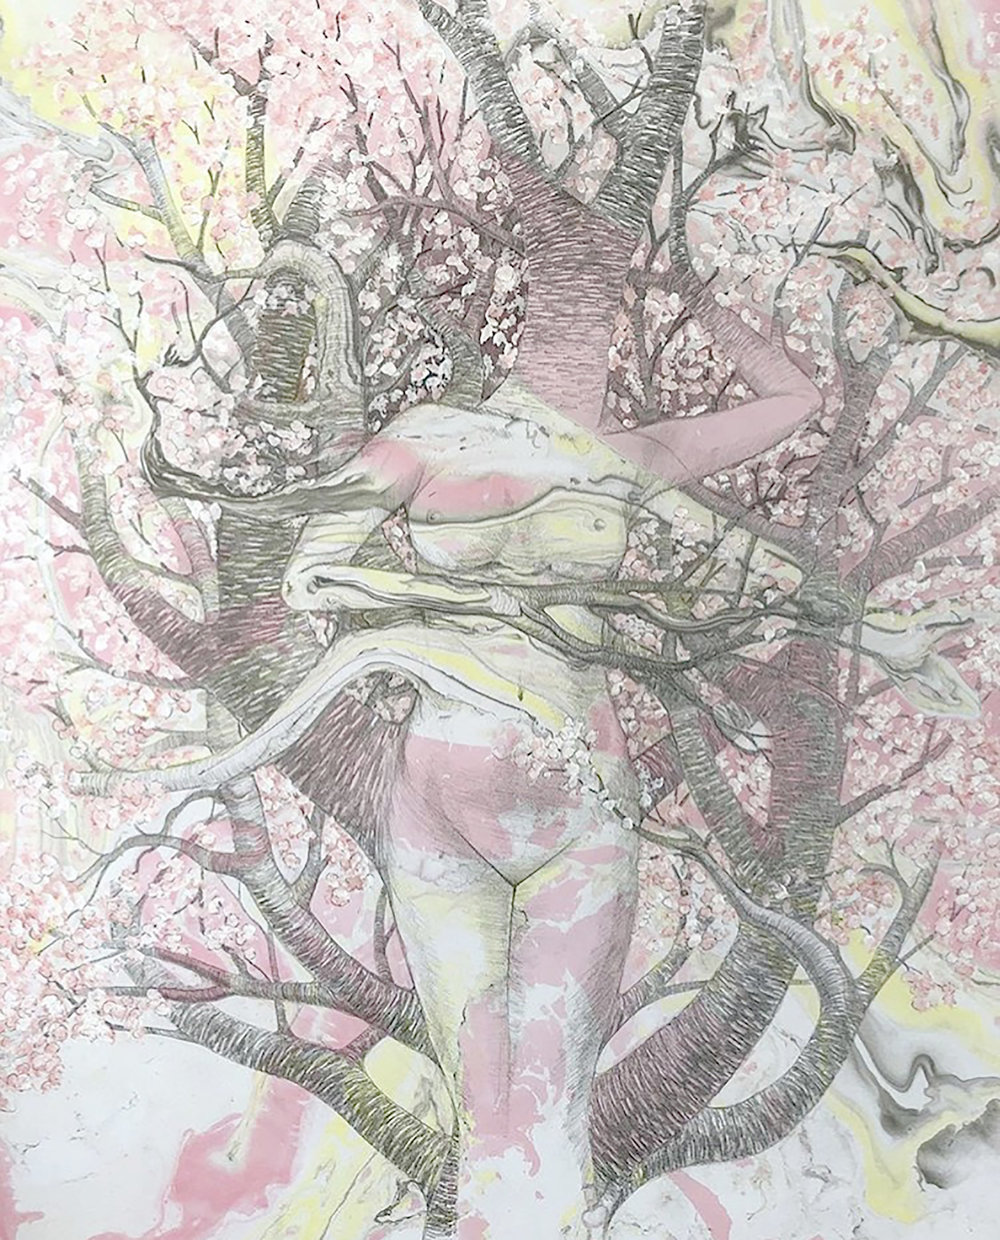 """Dryad    graphite, watercolor and acrylic on bristol board with suminagashi marbling  14"""" x 11""""  2018  (sold)"""